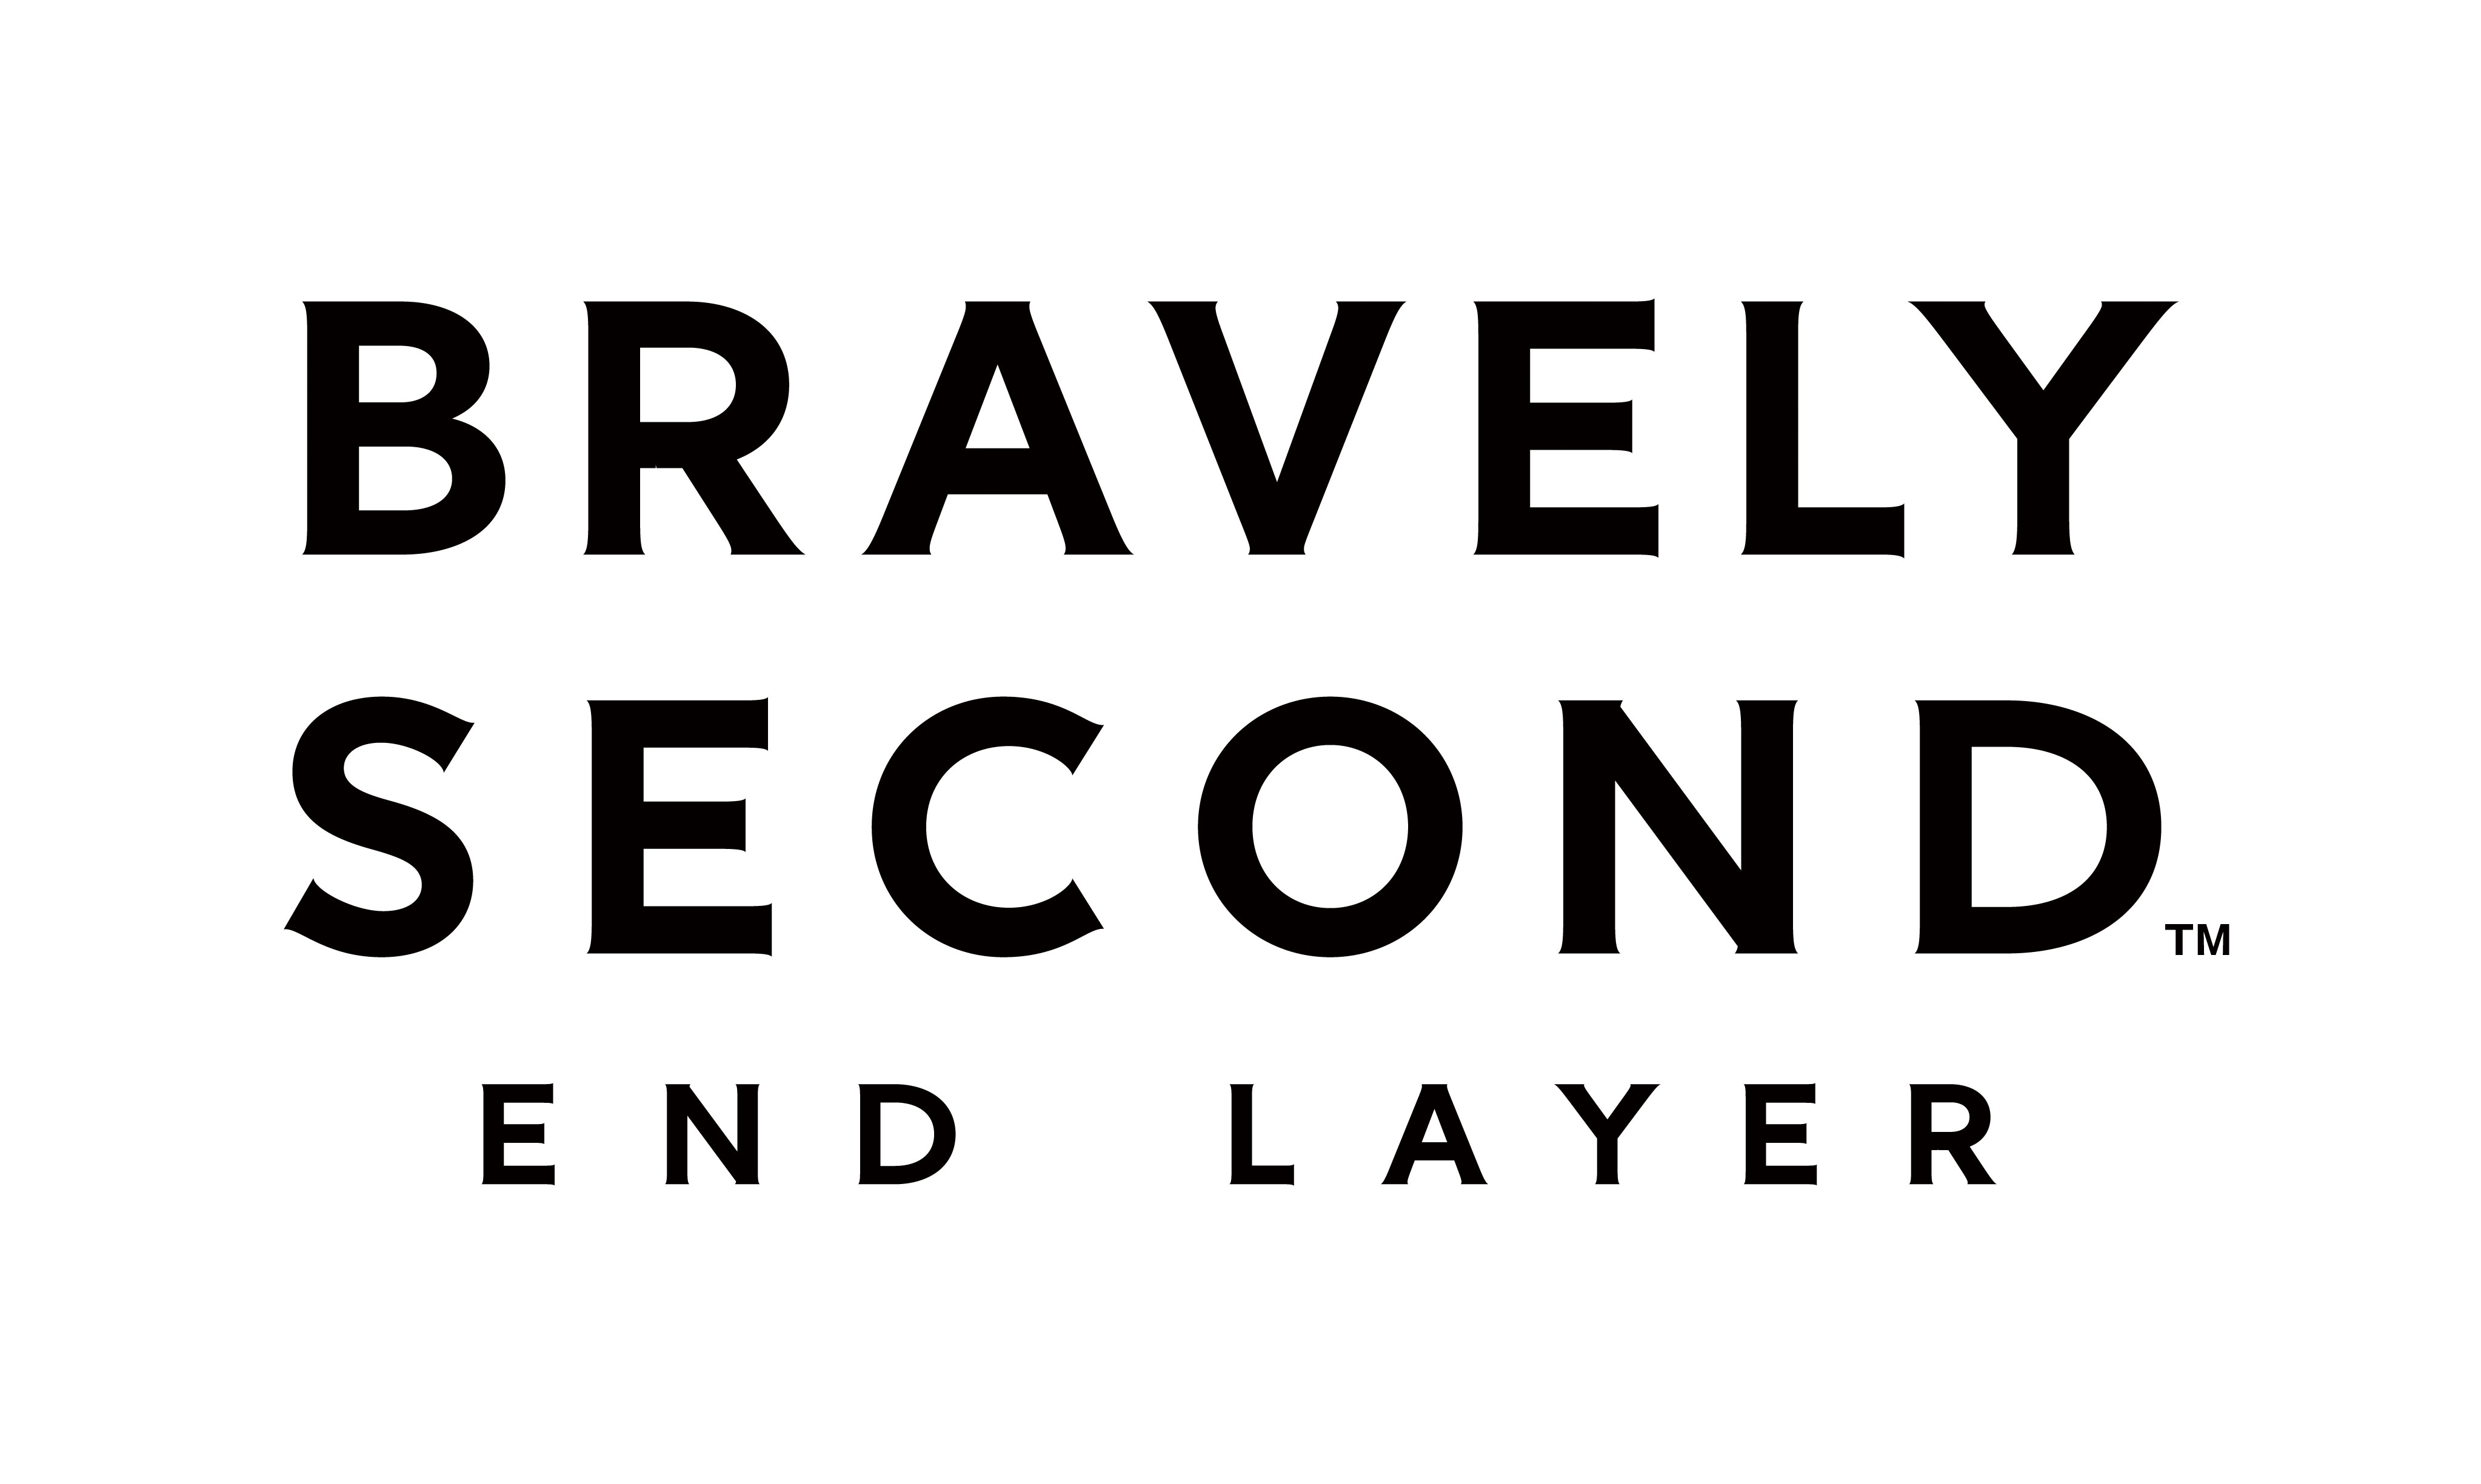 Box art - Bravely Second End Layer